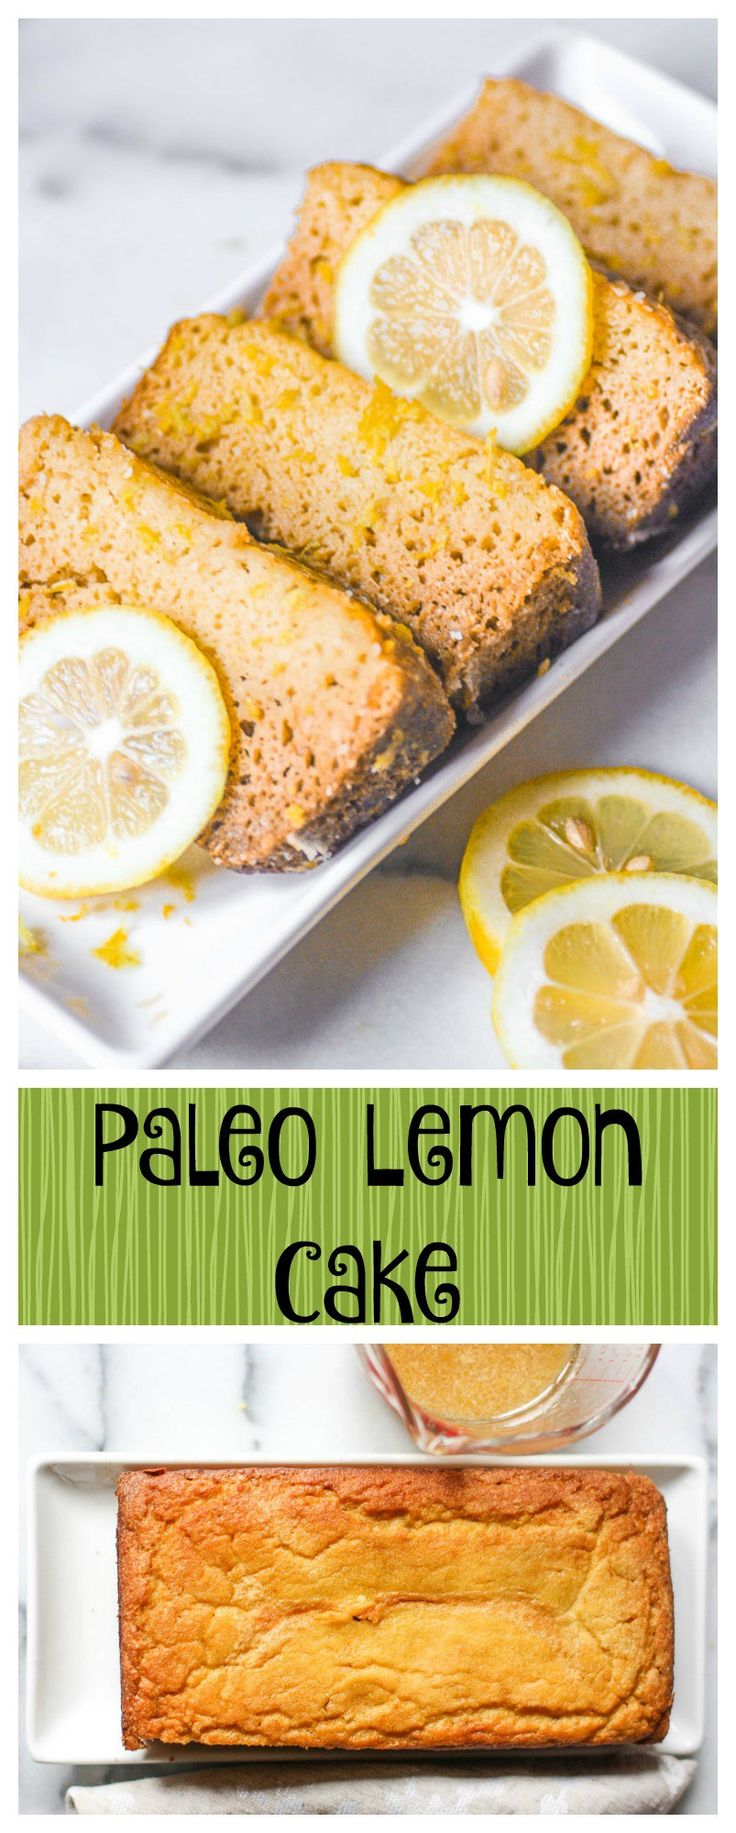 Paleo Lemon Cake. I forgot that this amazing recipe has no grains while I was eating this paleo lemon cake! It's that good! It's simple and it's healing. You have to try this!